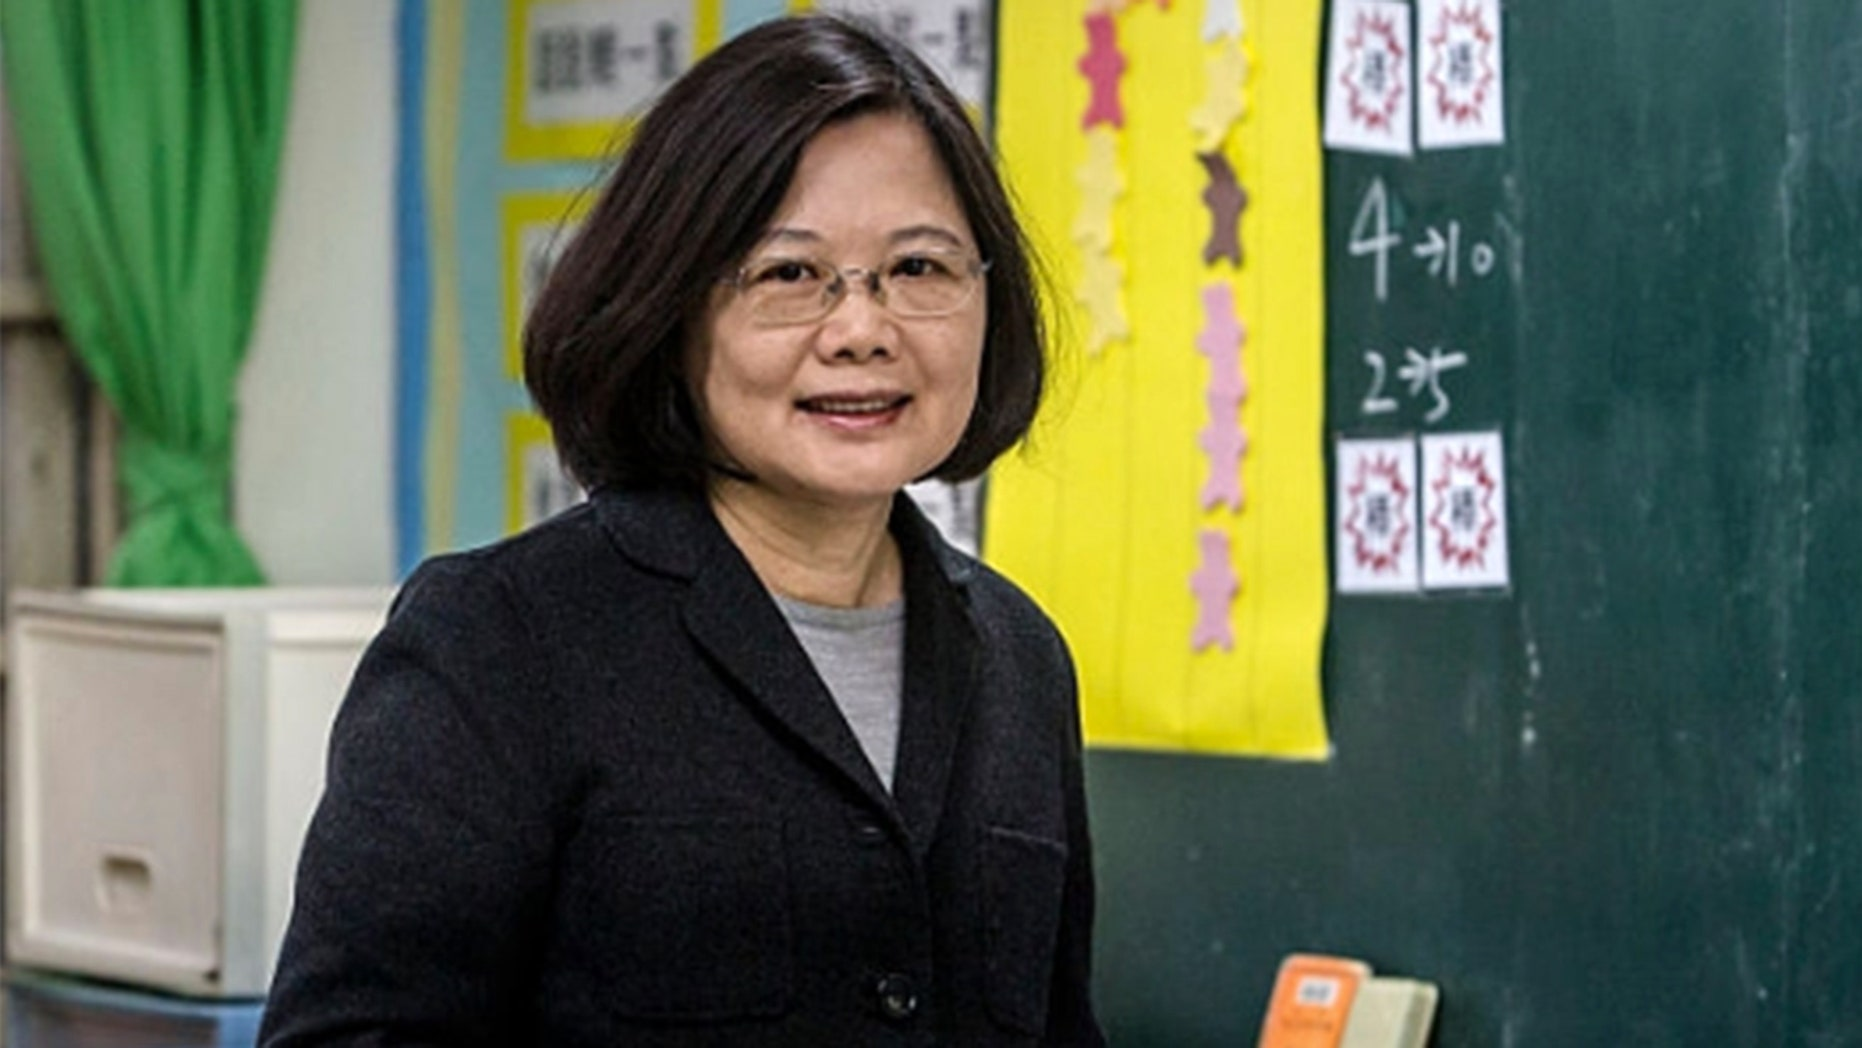 """Taiwan's President Tsai Ing-wen is seen above. She said that no one can """"obliterate"""" her country's existence."""